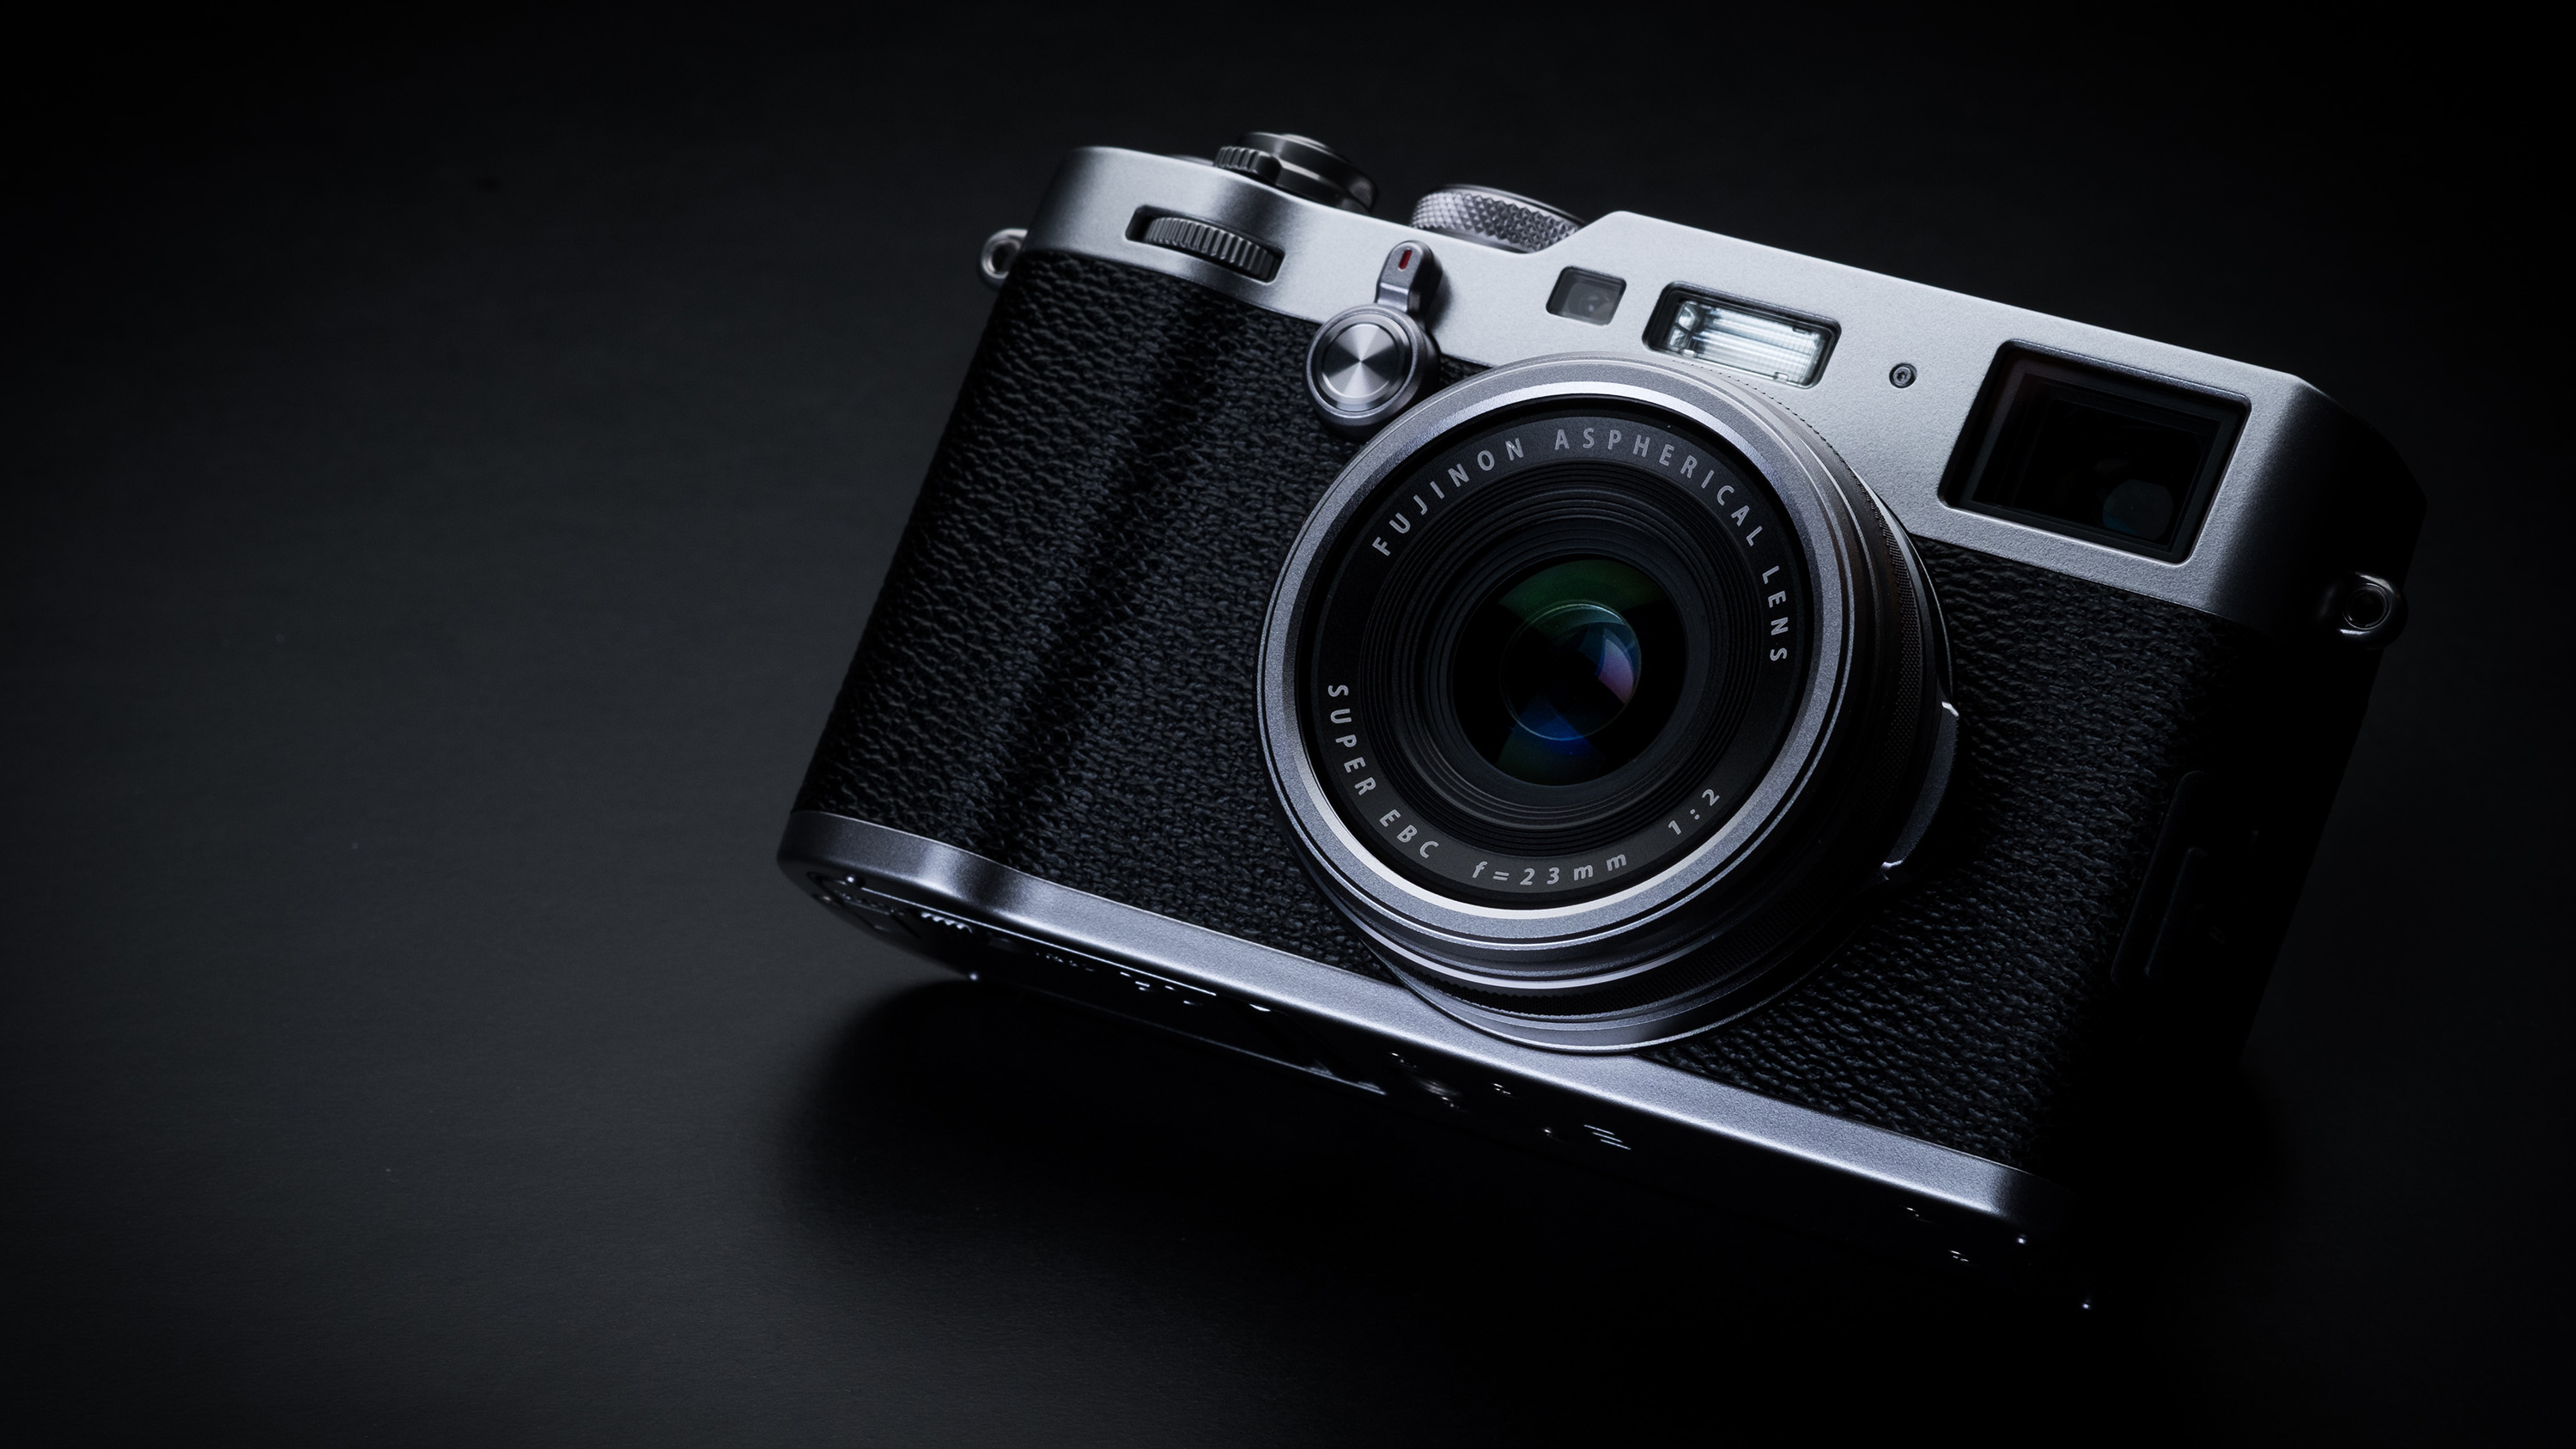 Best compact camera 2019: 10 top compact cameras to suit all abilities | TechRadar